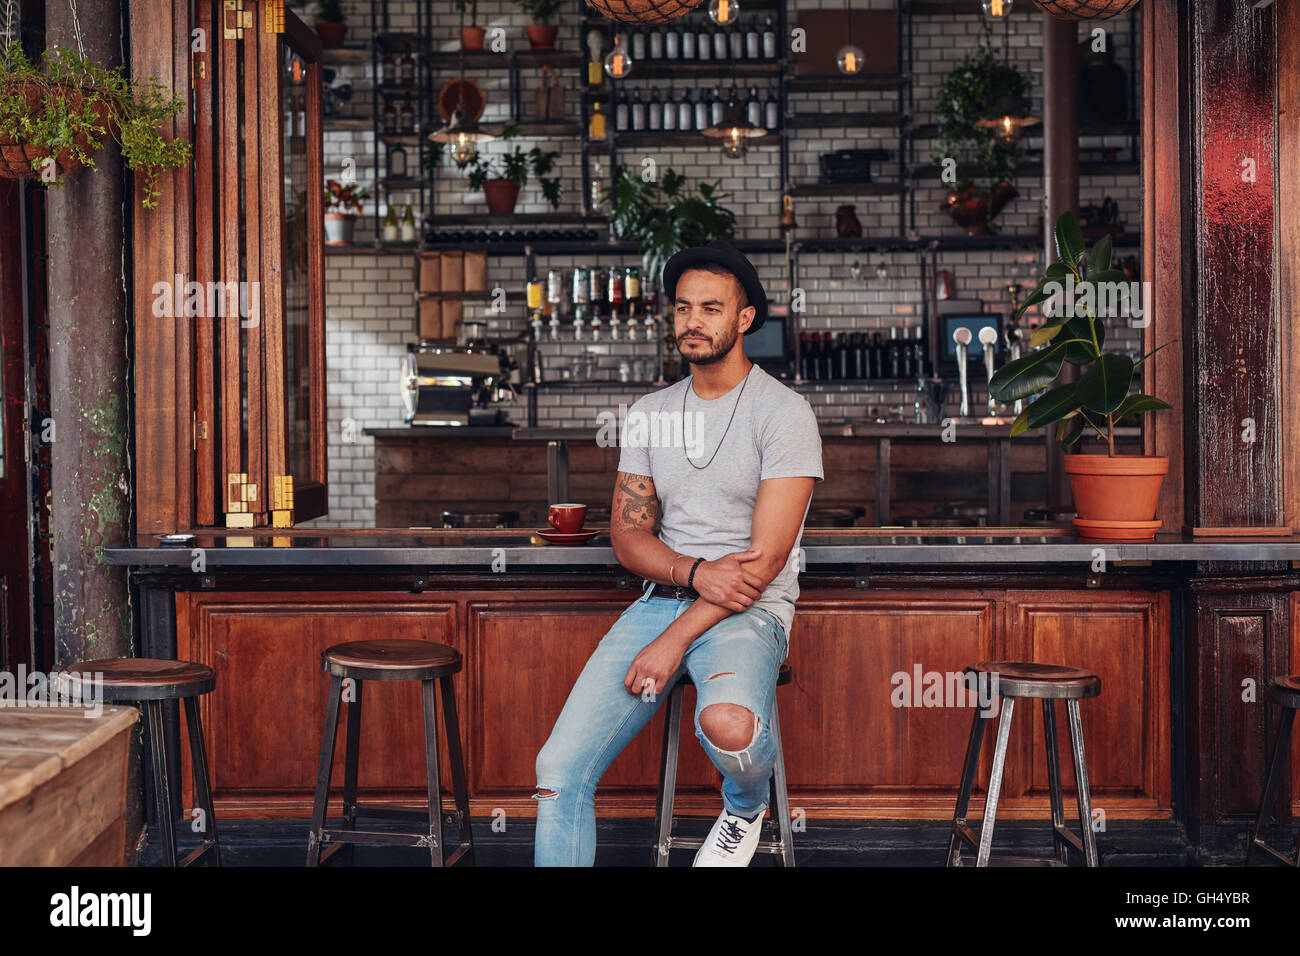 Portrait of upset young man sitting alone at a cafe counter. Modern young caucasian man looking serious. - Stock Image